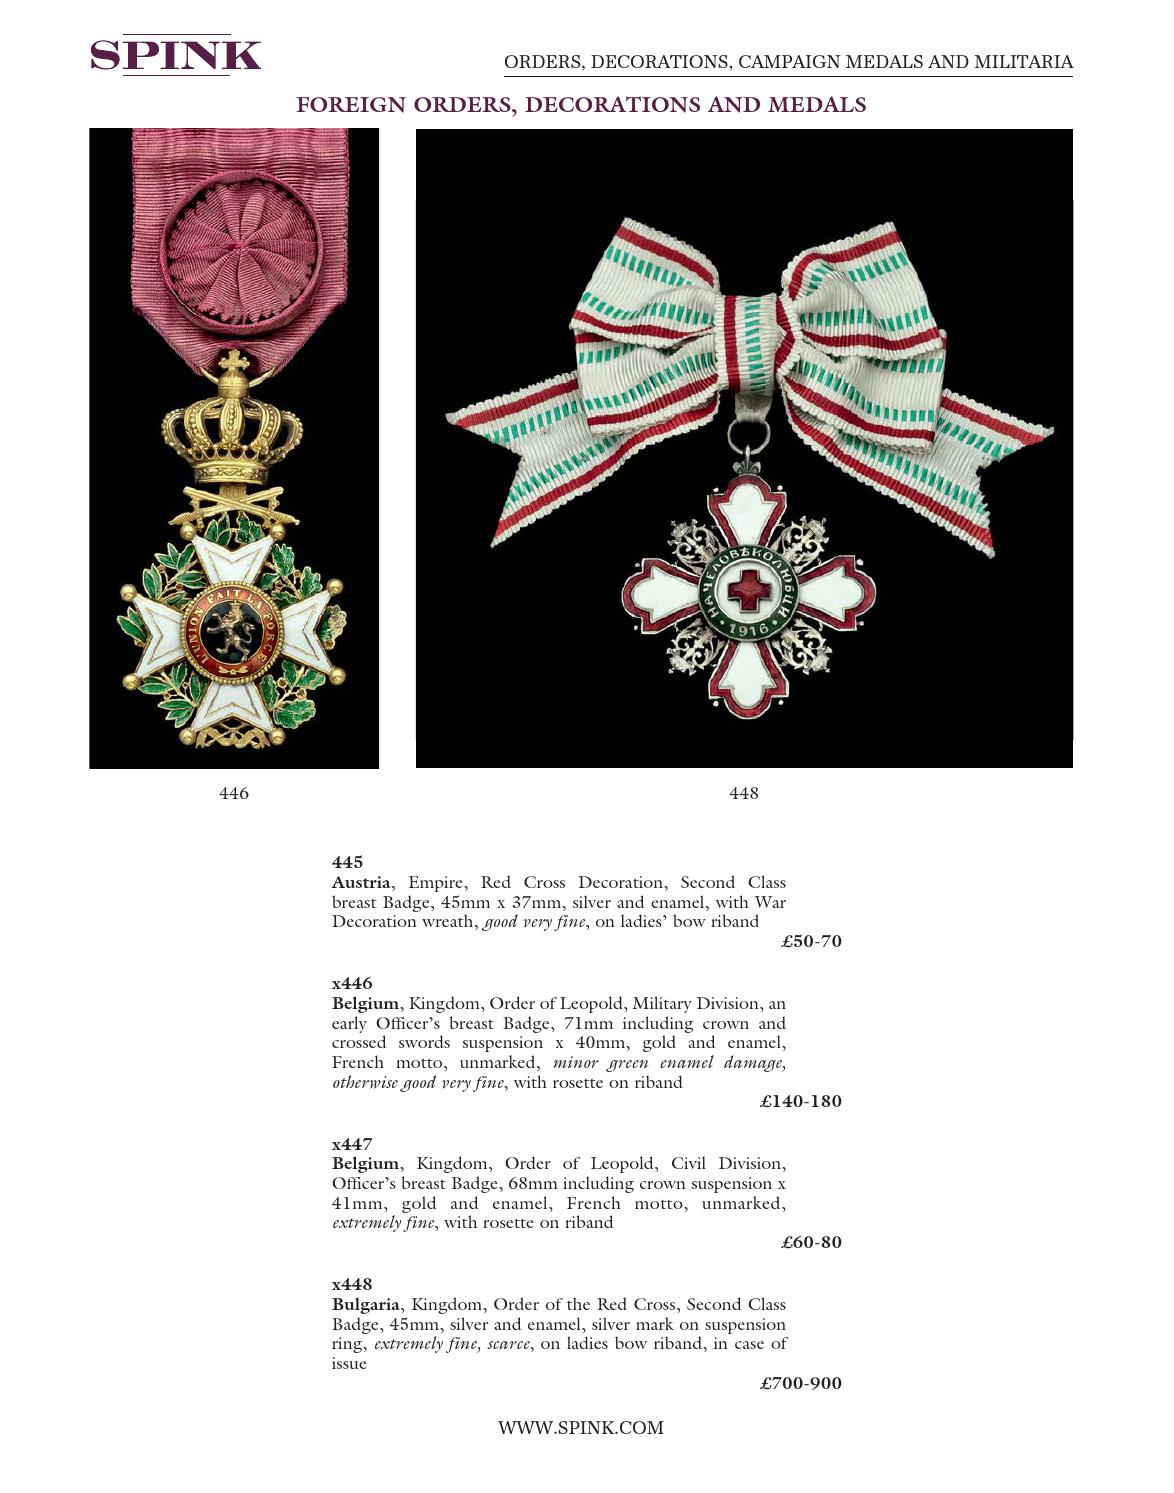 Orders, Decorations, Campaign Medals and Militaria by Spink